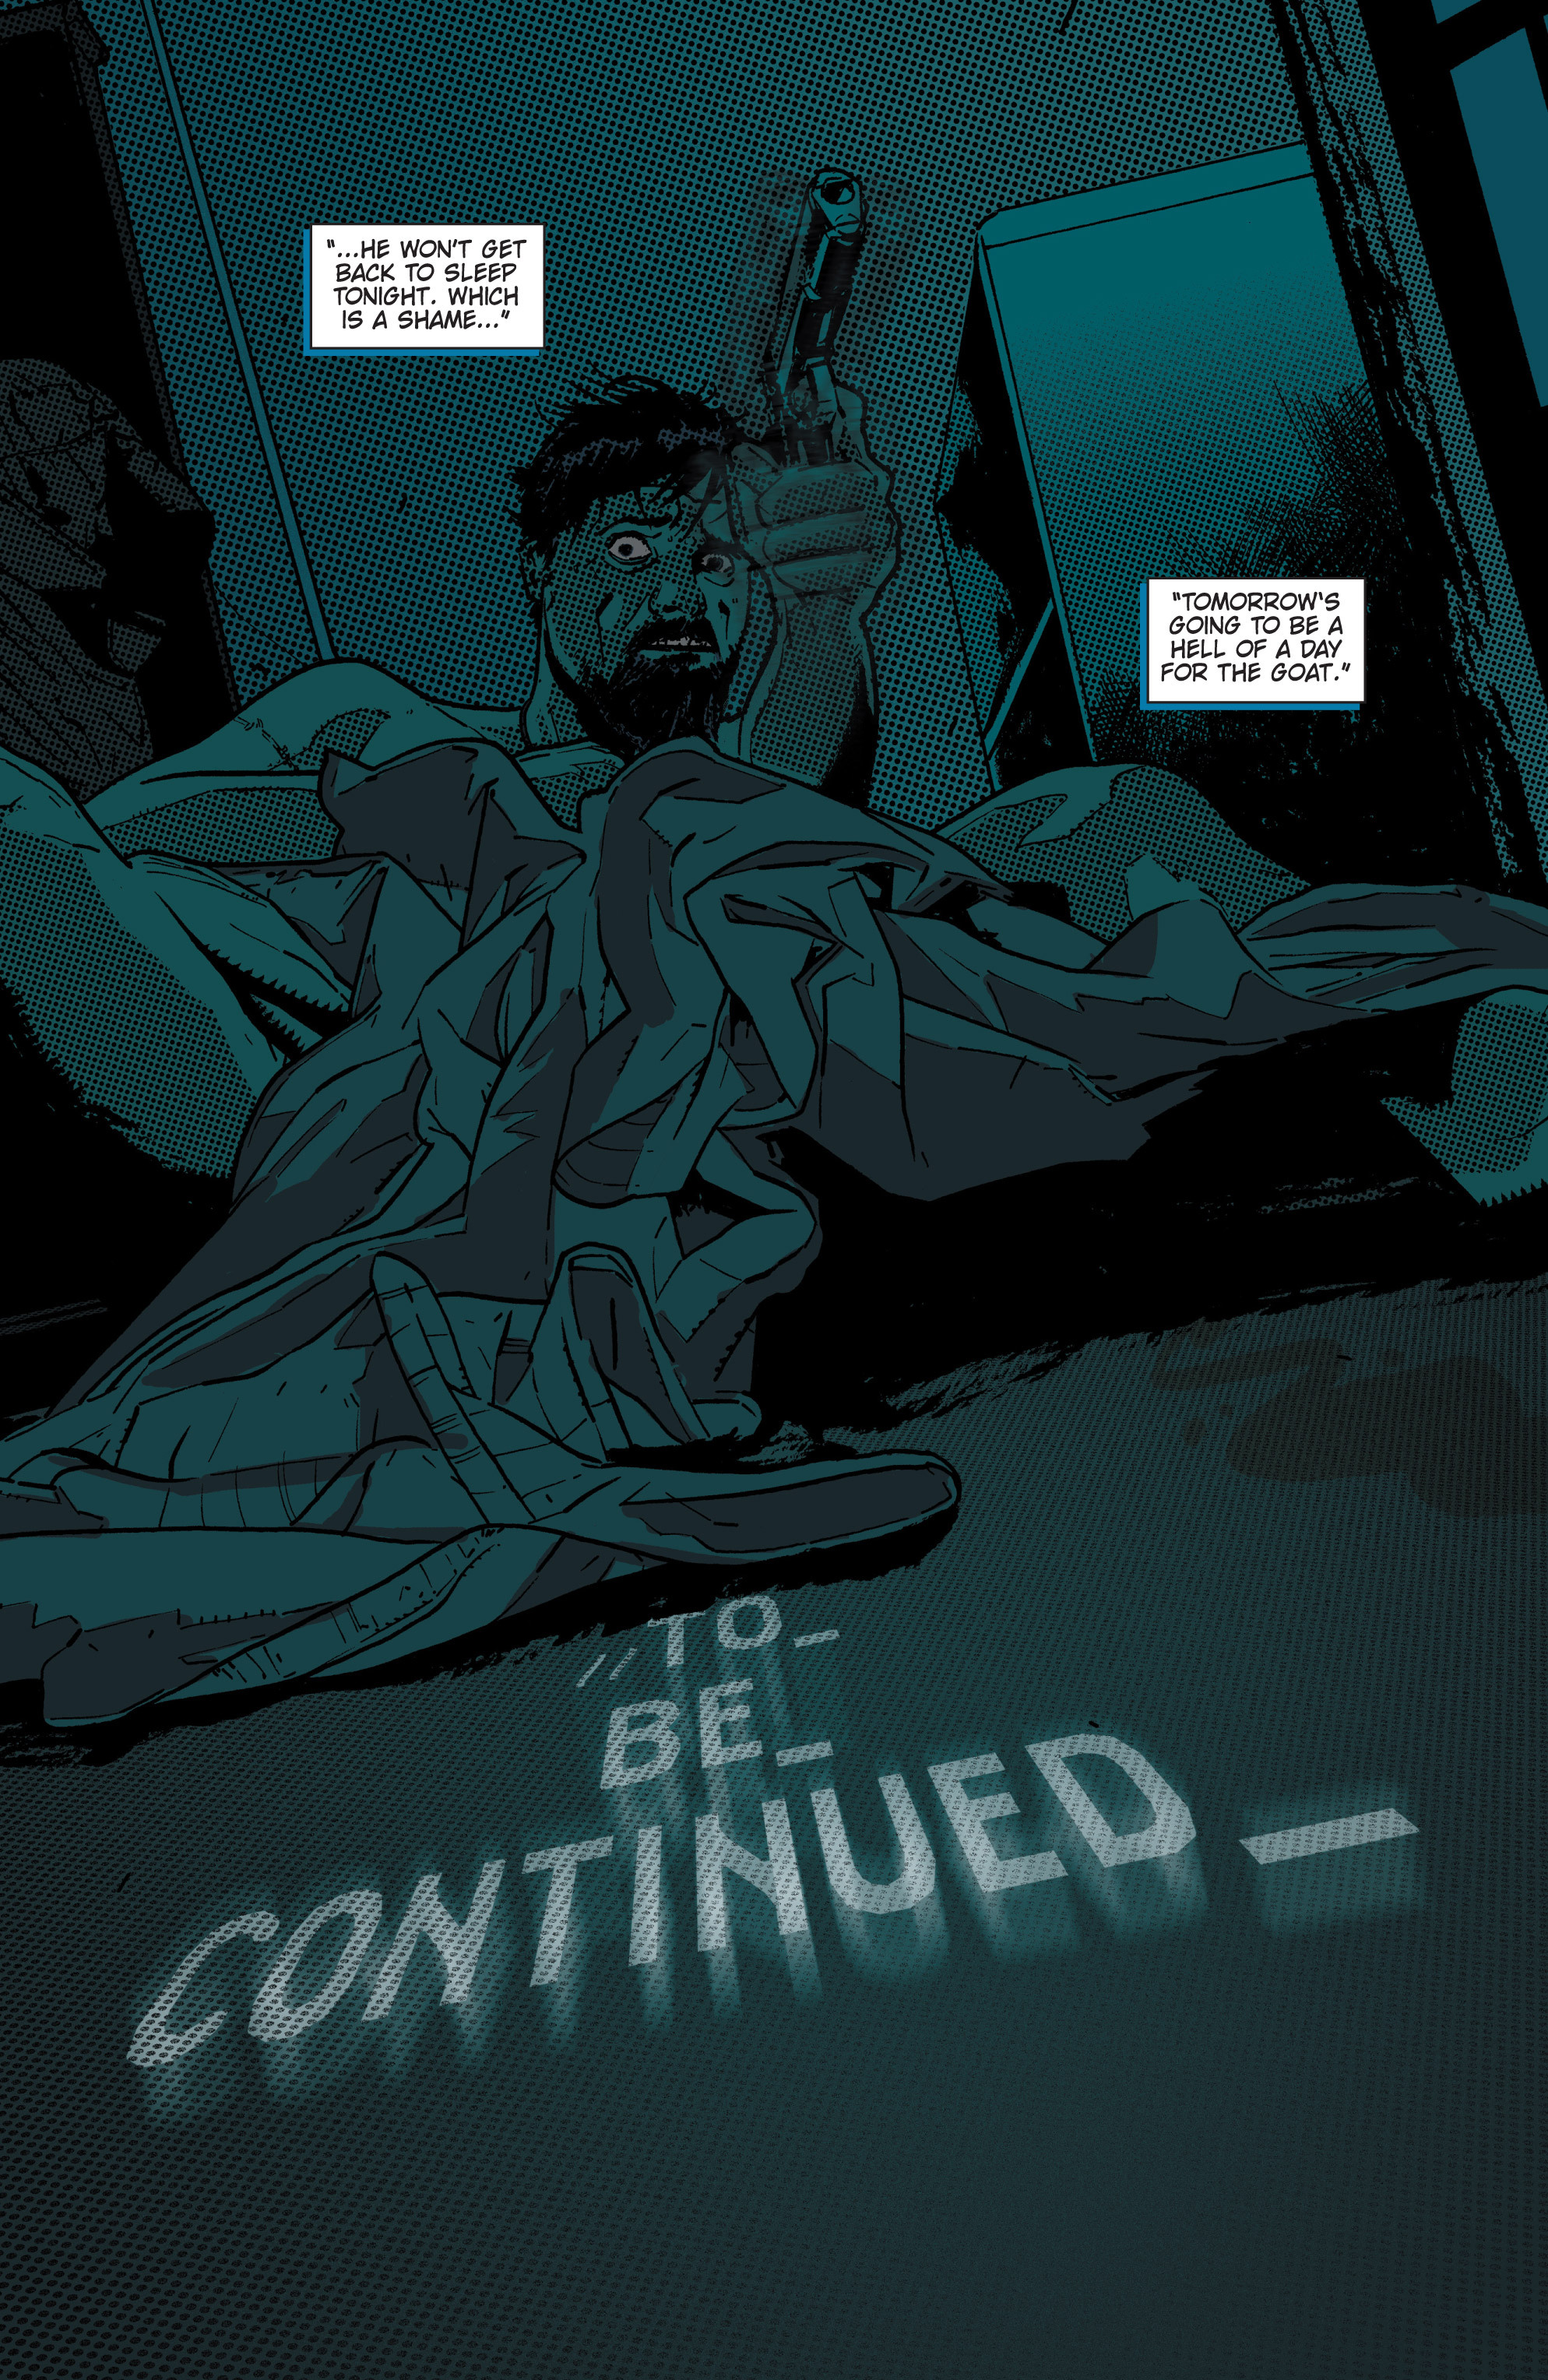 Read online The Activity comic -  Issue #7 - 23